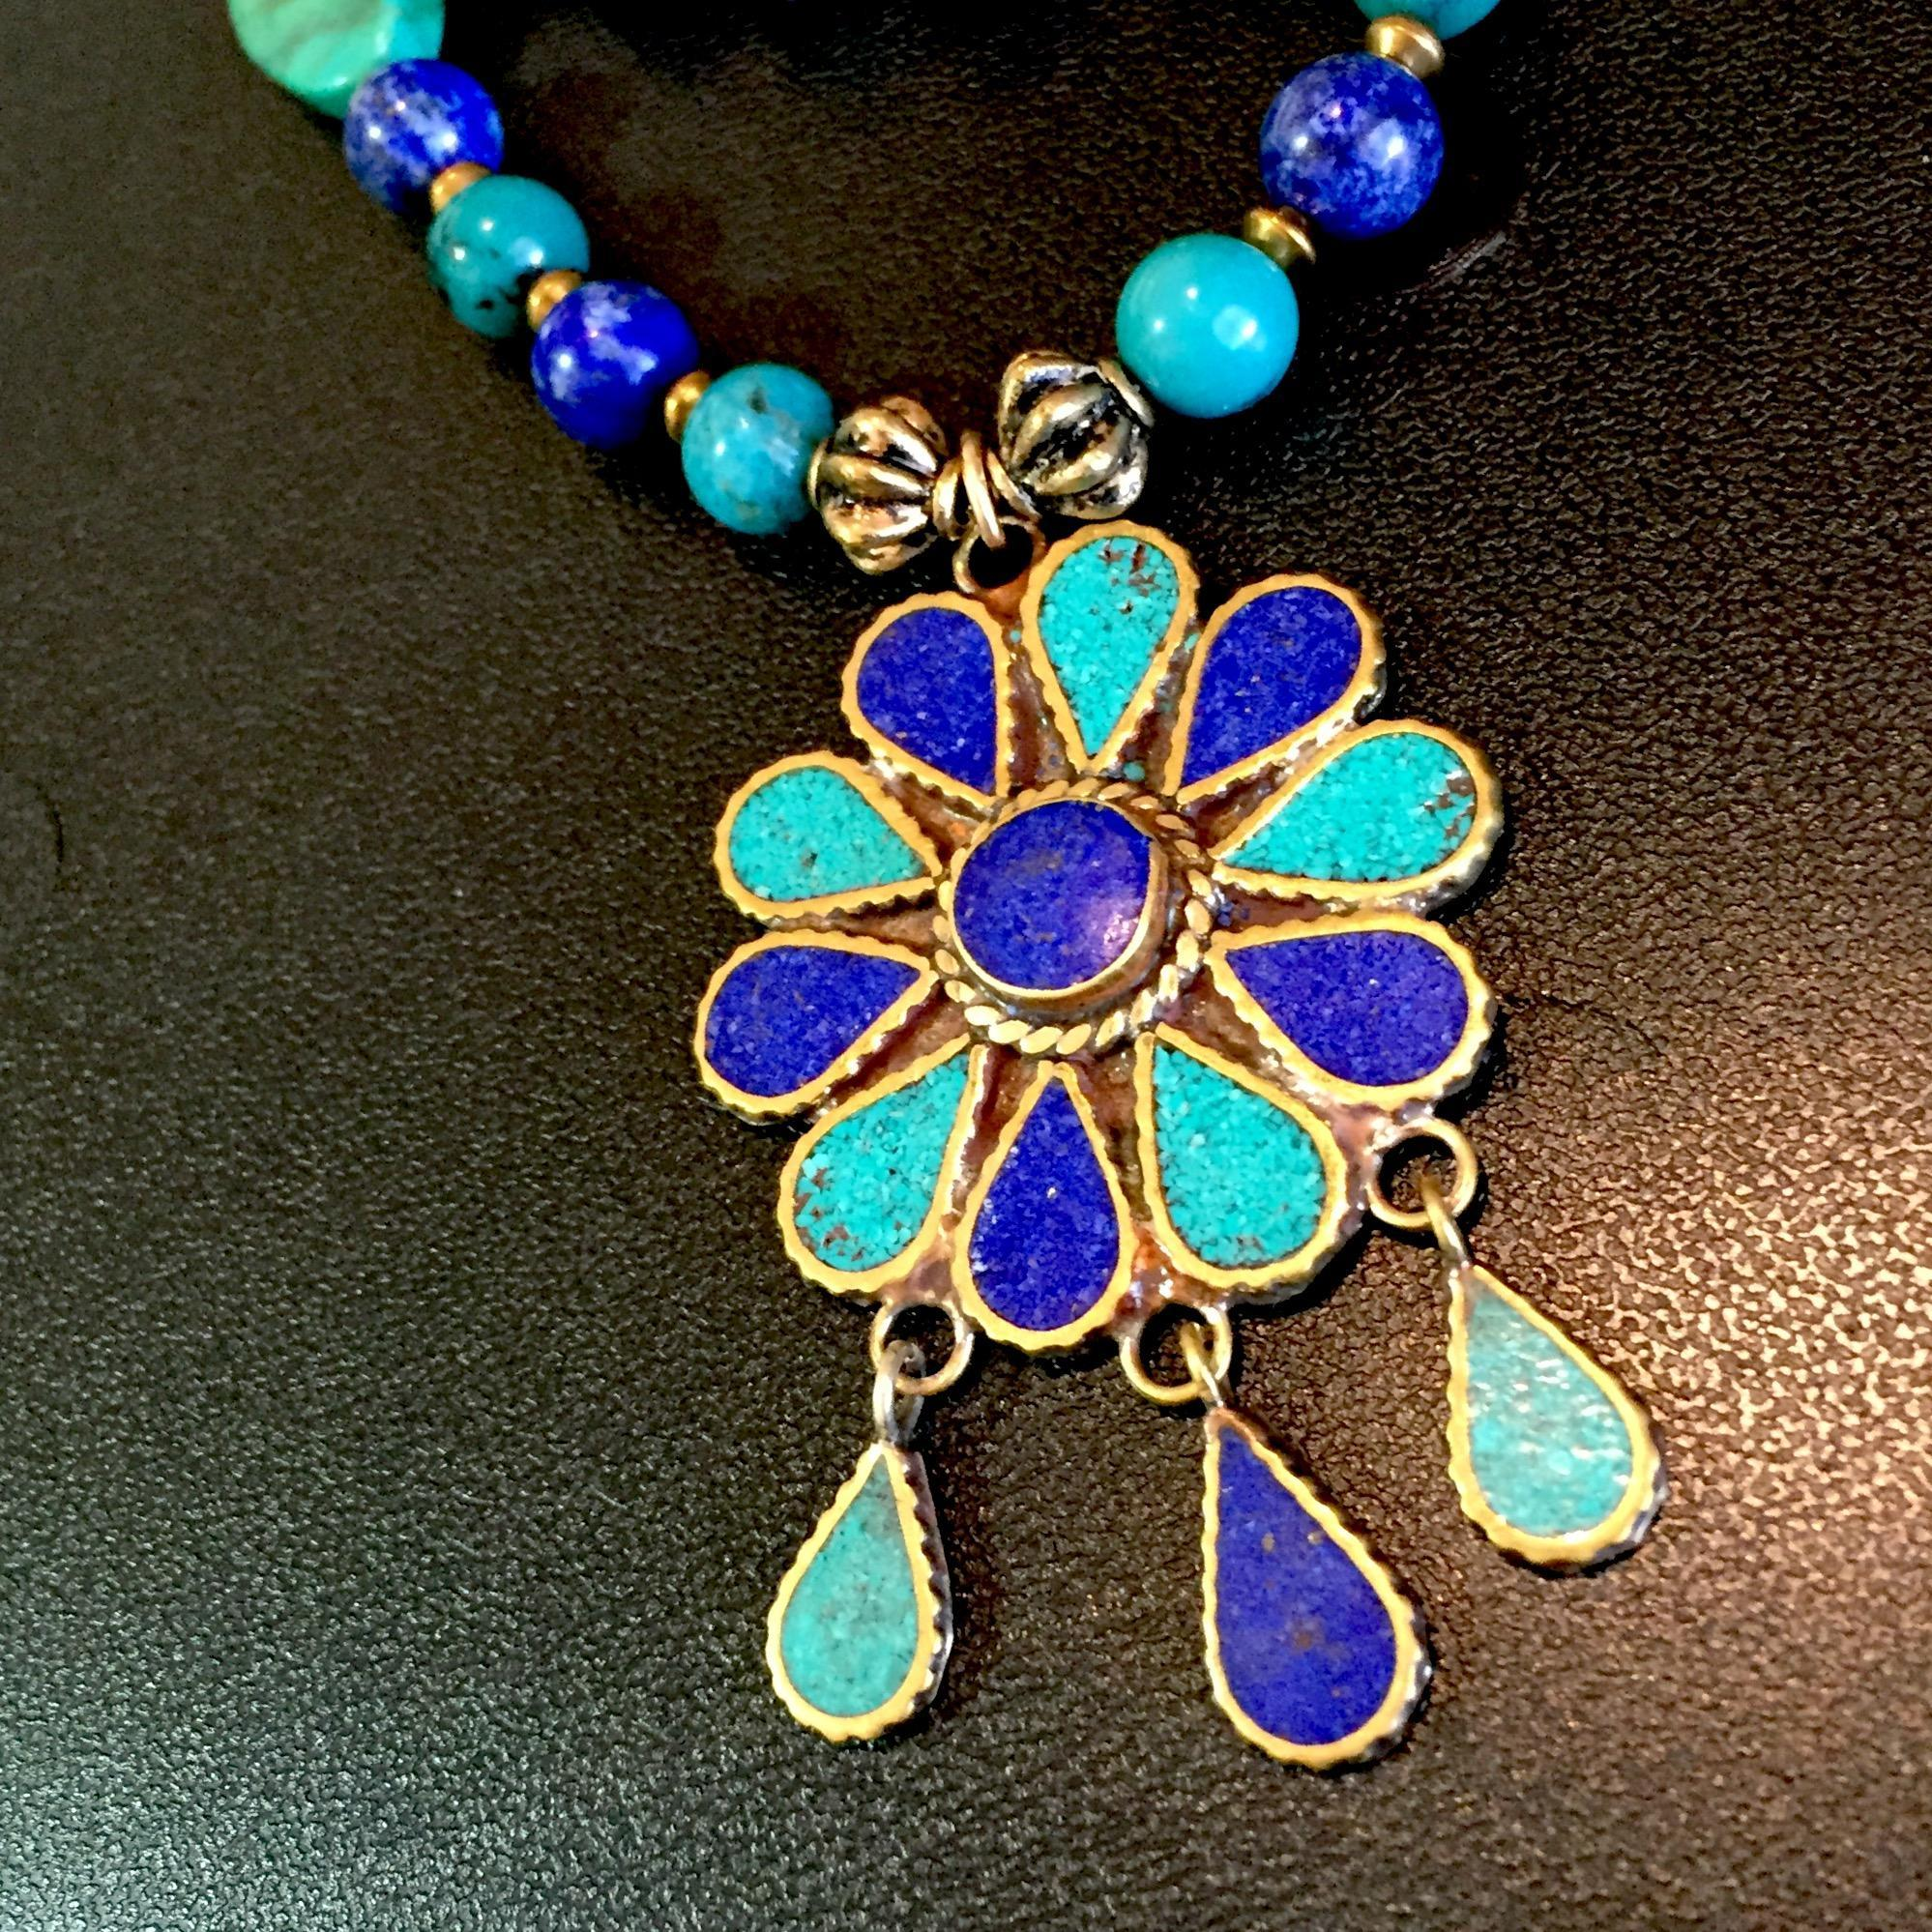 Turquoise, Lapis and Brass Necklace, 20-3/8 Inches